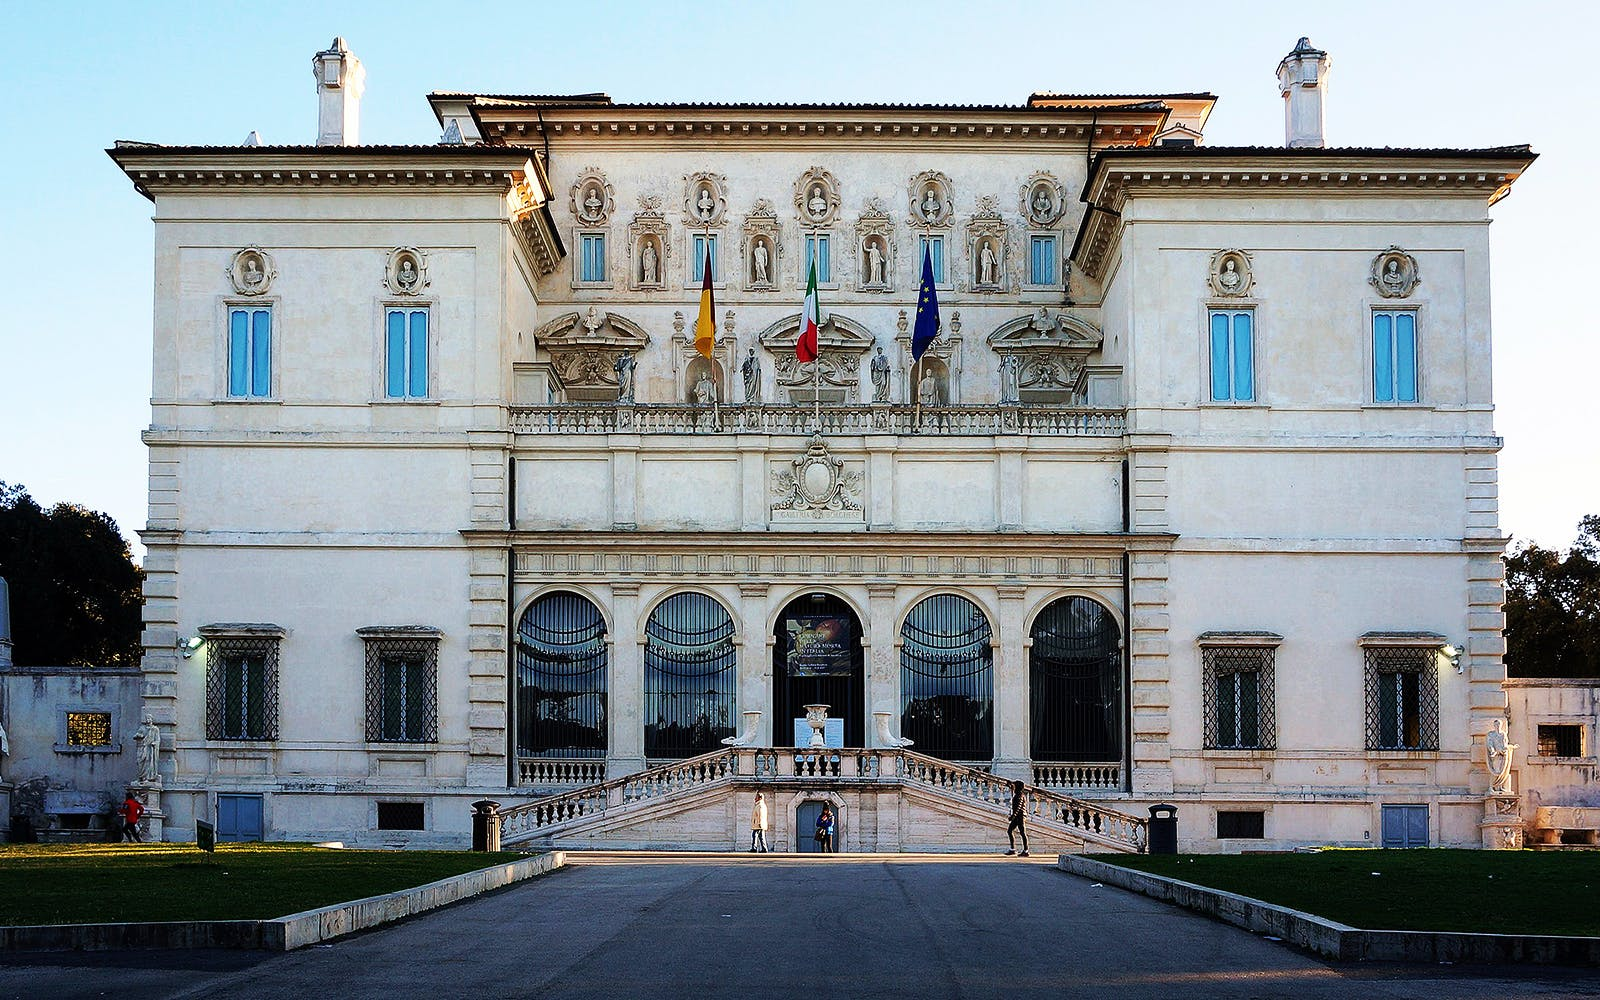 Priority Access Tickets to Borghese Gallery